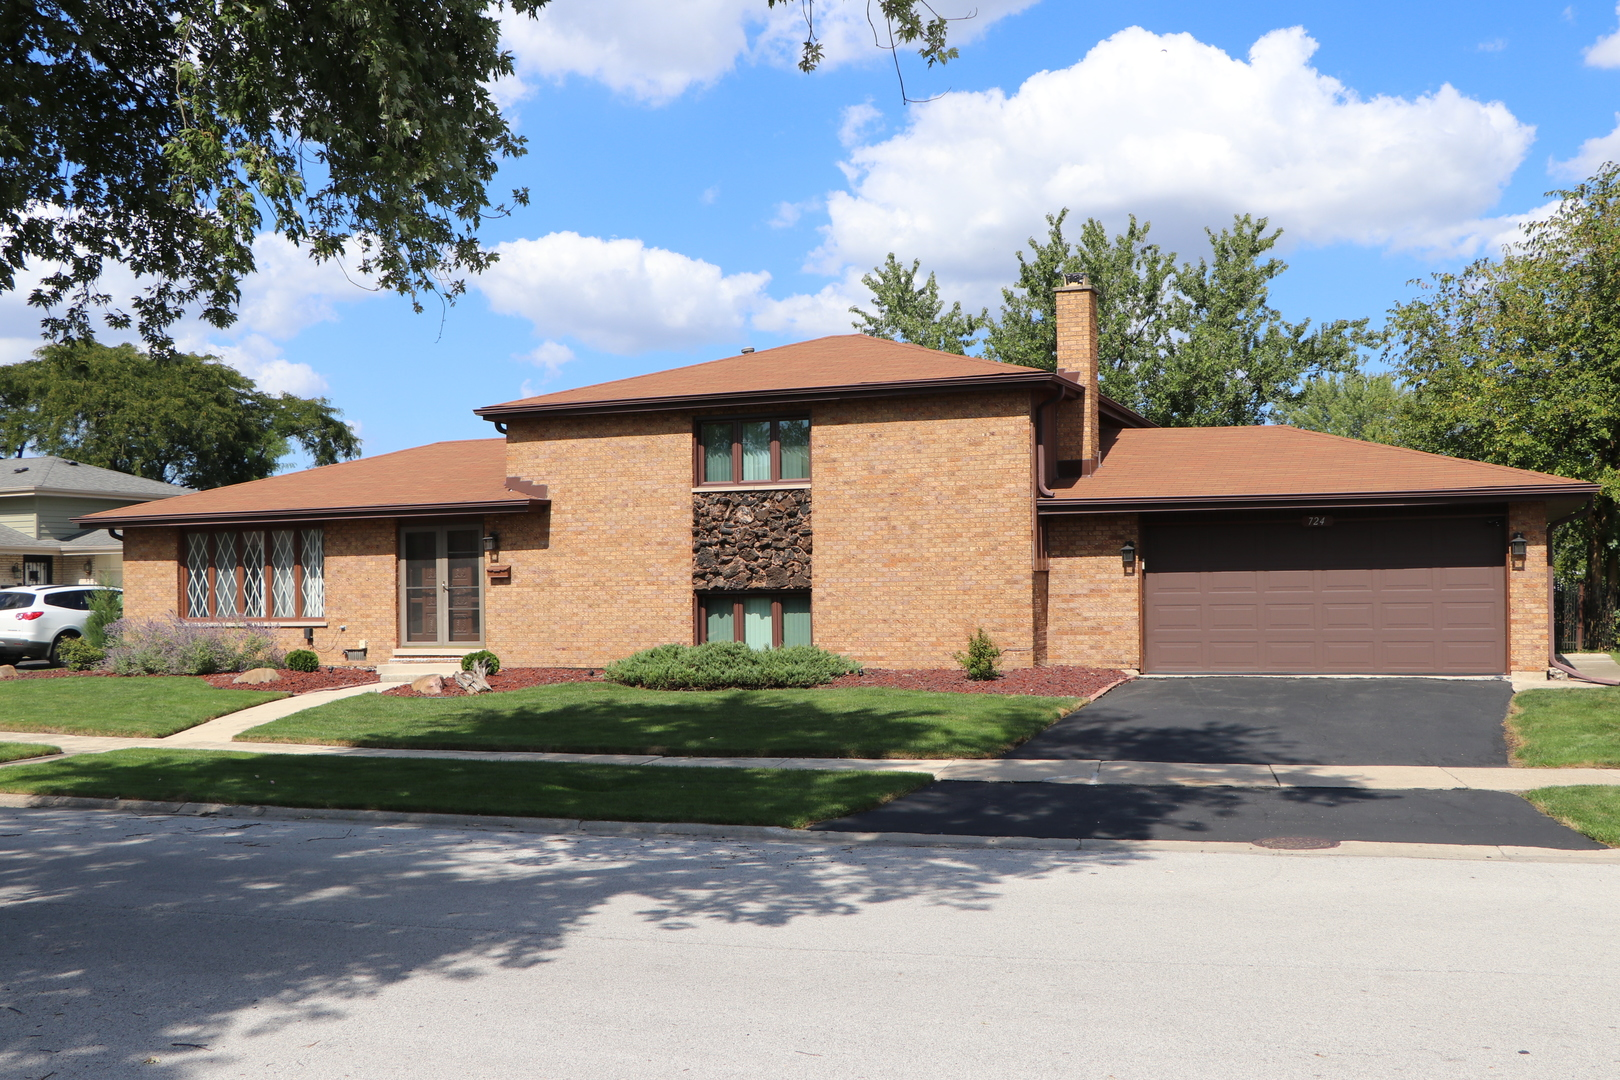 724 East 193rd, GLENWOOD, Illinois, 60425